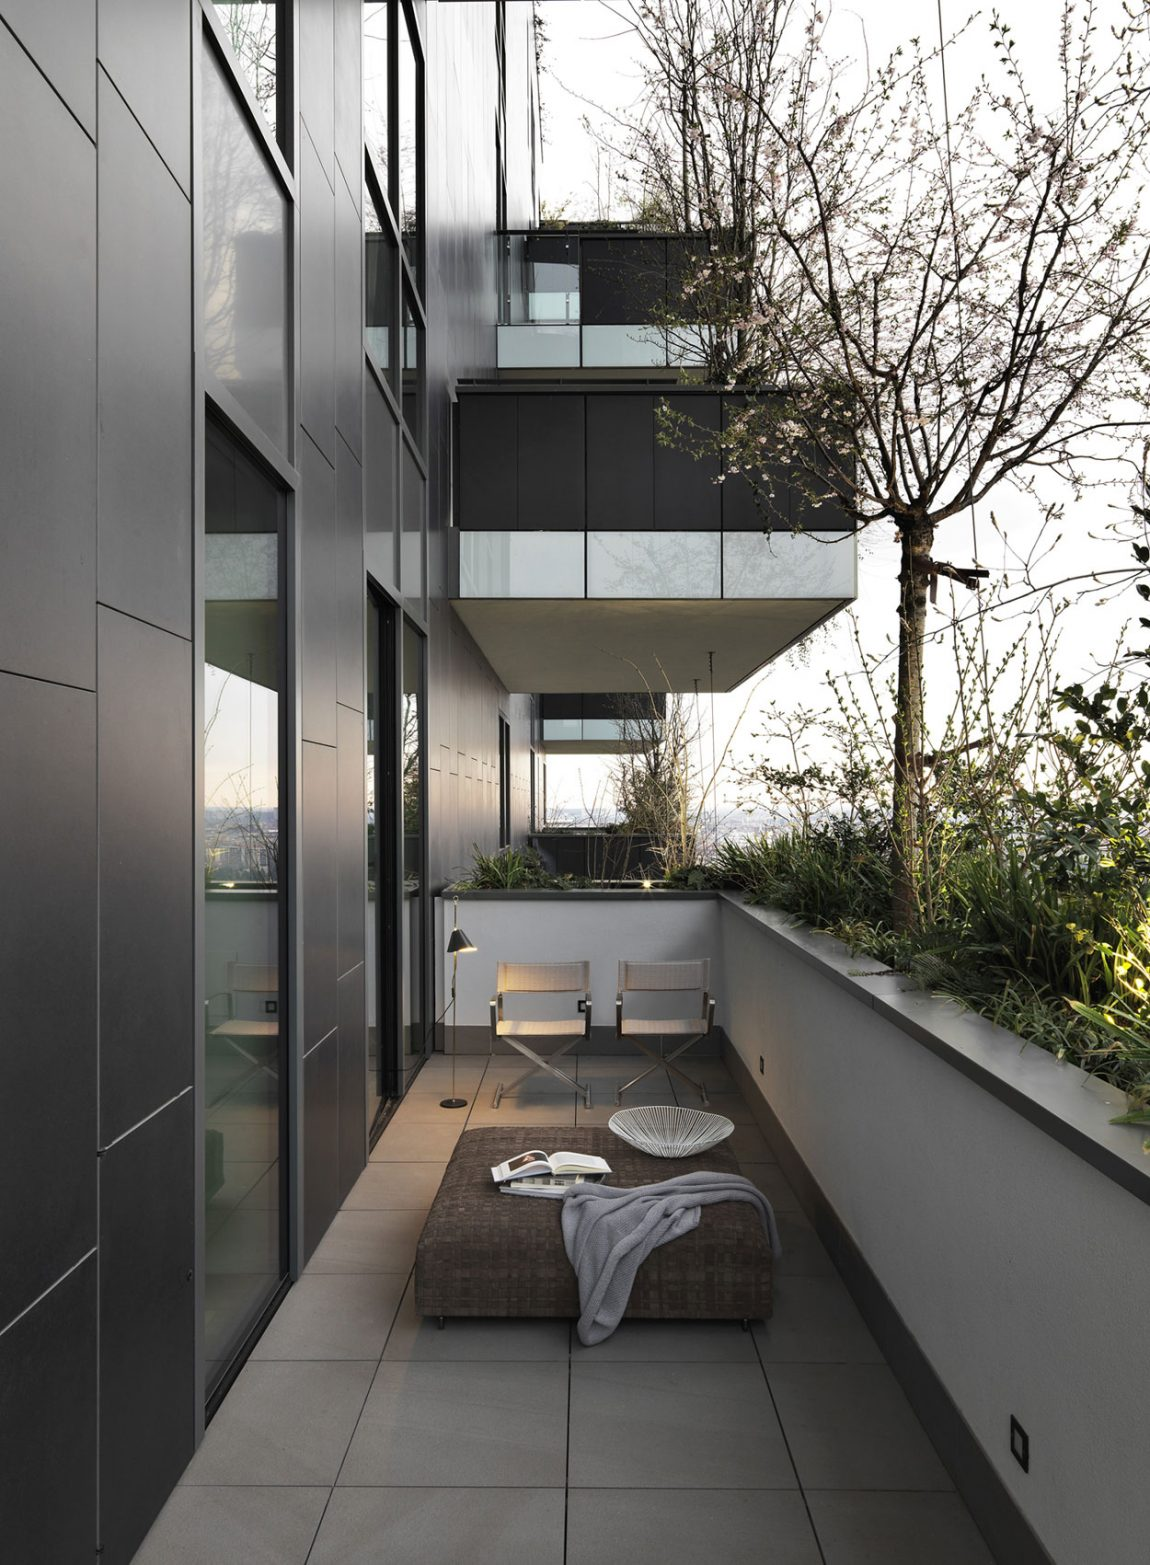 Penthouse-at-Bosco-Verticale-01-1150x1565